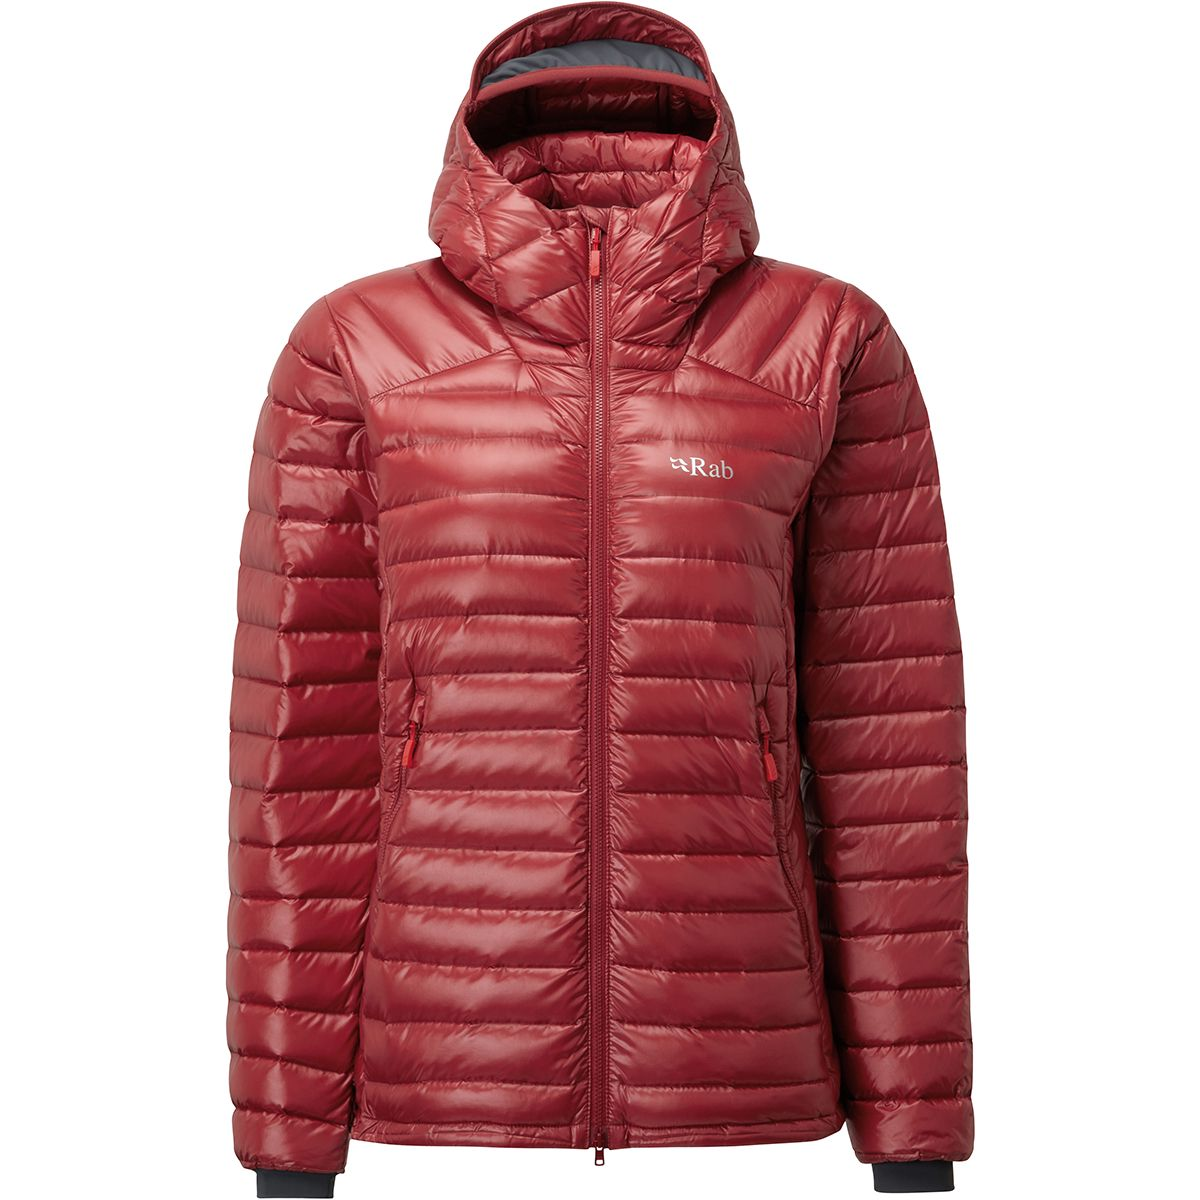 Rab Damen Microlight Summit Jacke (Größe XS, Rot) | Isolationsjacken > Damen